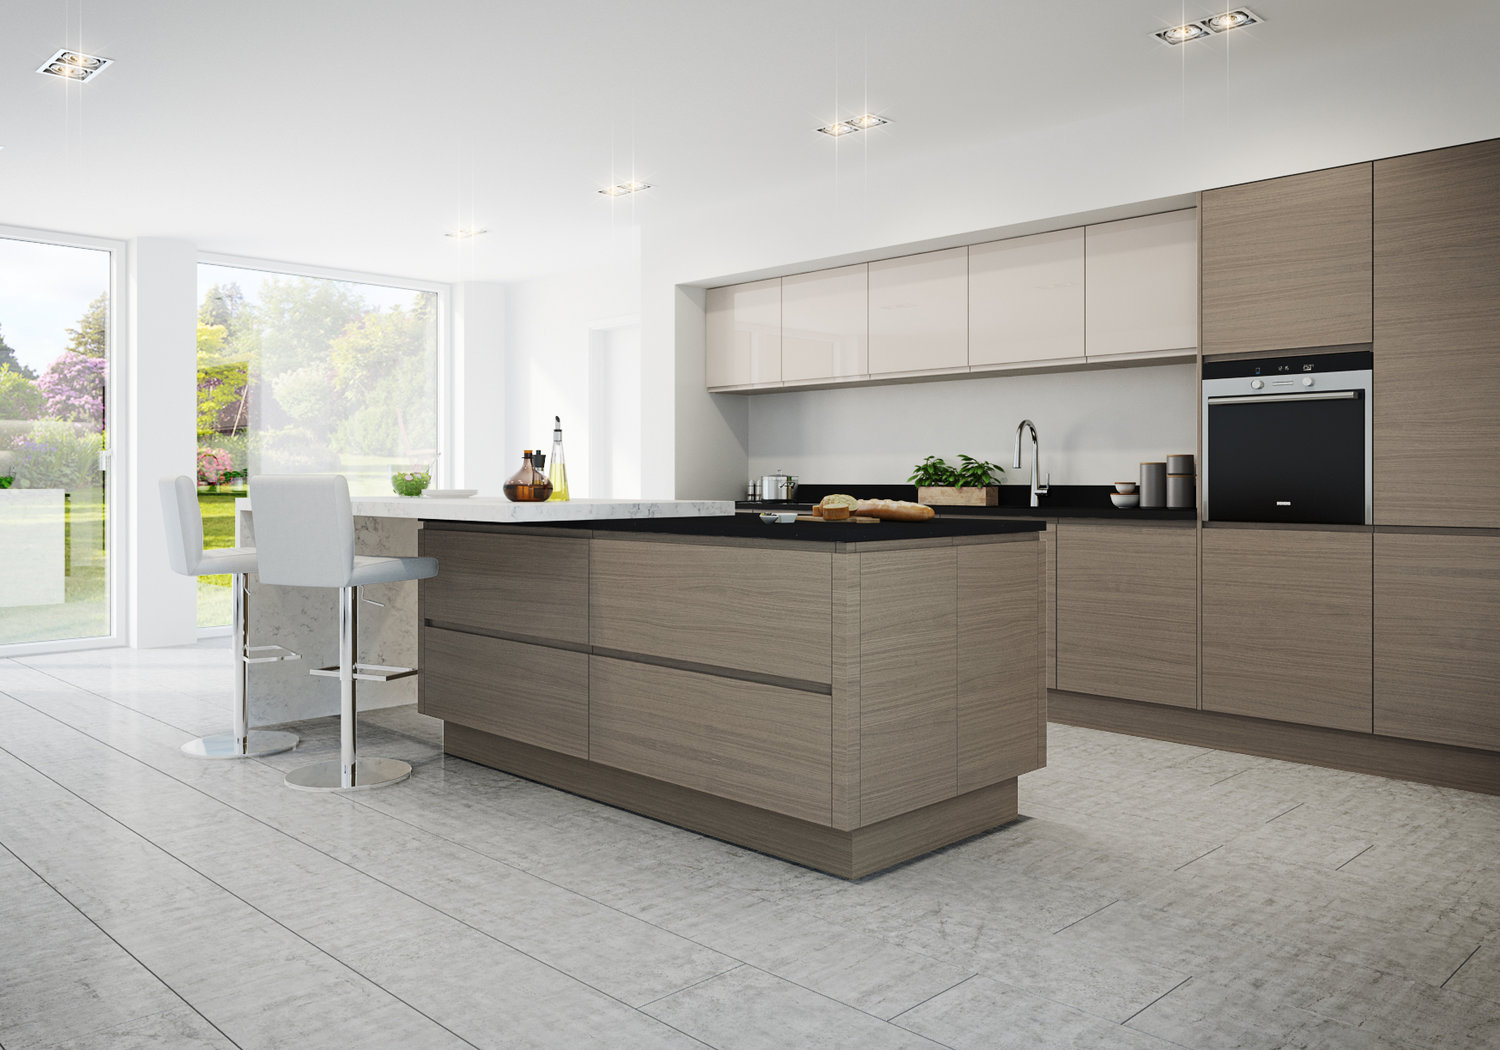 sophisticated and stylish, a malmo kitchen offers practical storage with contemporary elegance.